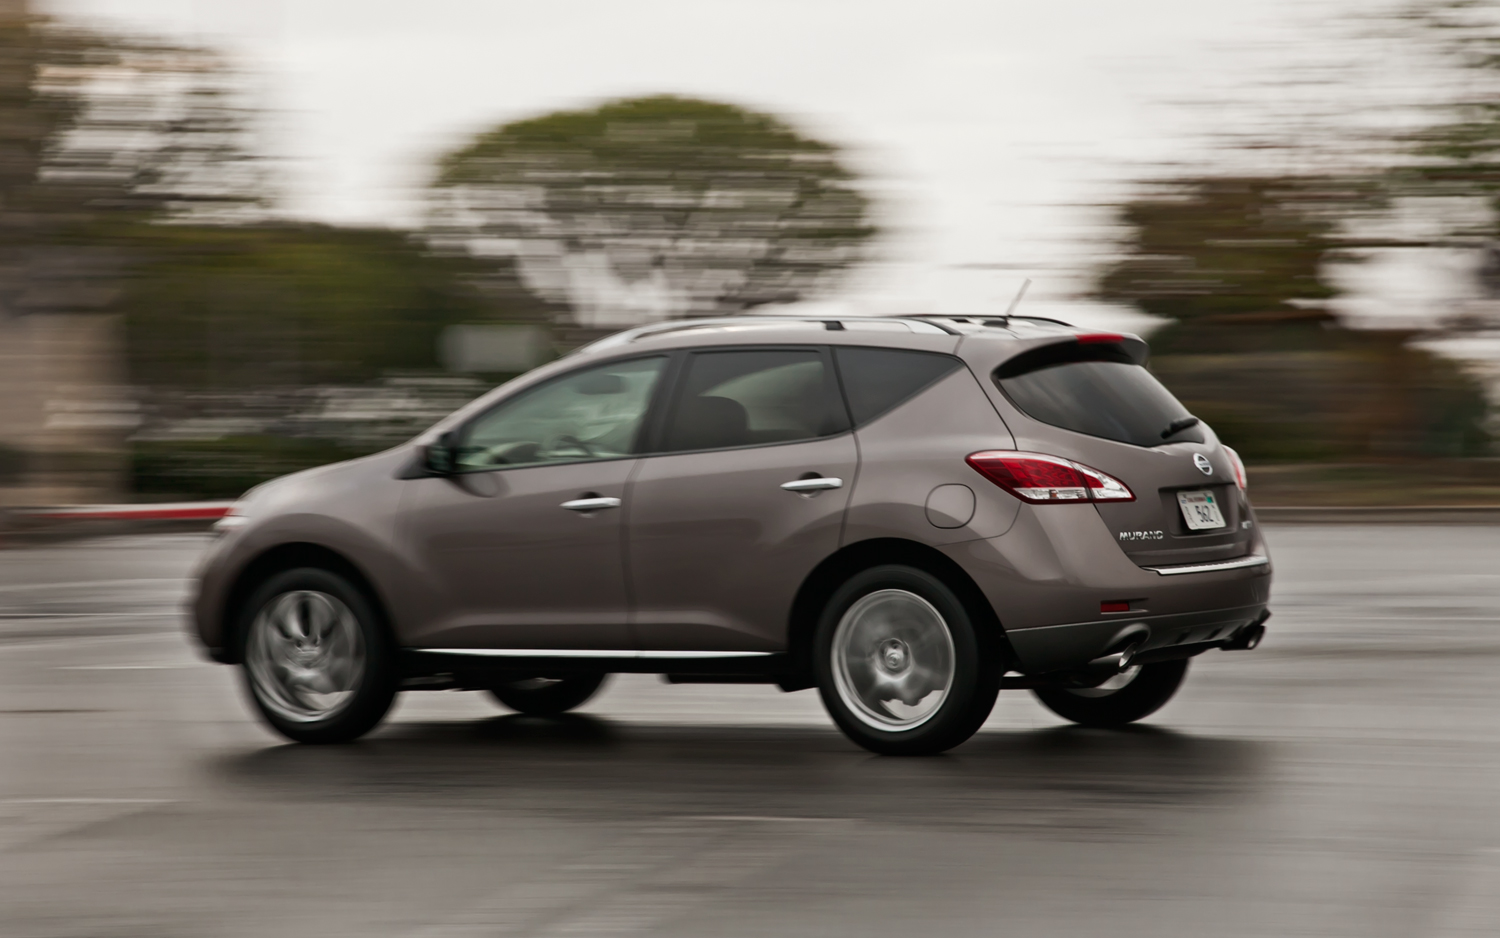 Pictures of nissan murano ii 2012 #9